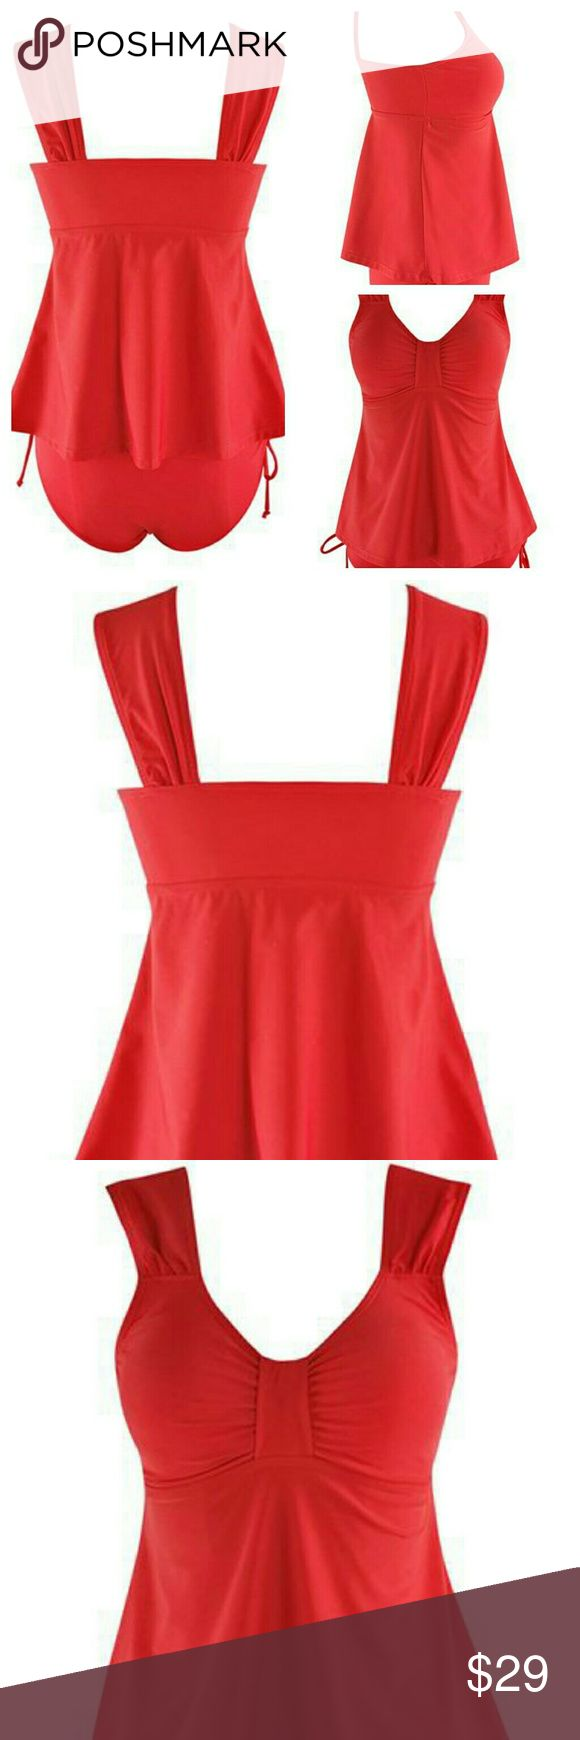 Brand New Red Tankini with cute ties on bottom Material : Nylon  Pattern Type : Solid Red  Swimwear Type : Tankini  Support :Wire Free  Bra Style :Padded  Sanity liner fully intact, brand new suit. Swim Bikinis